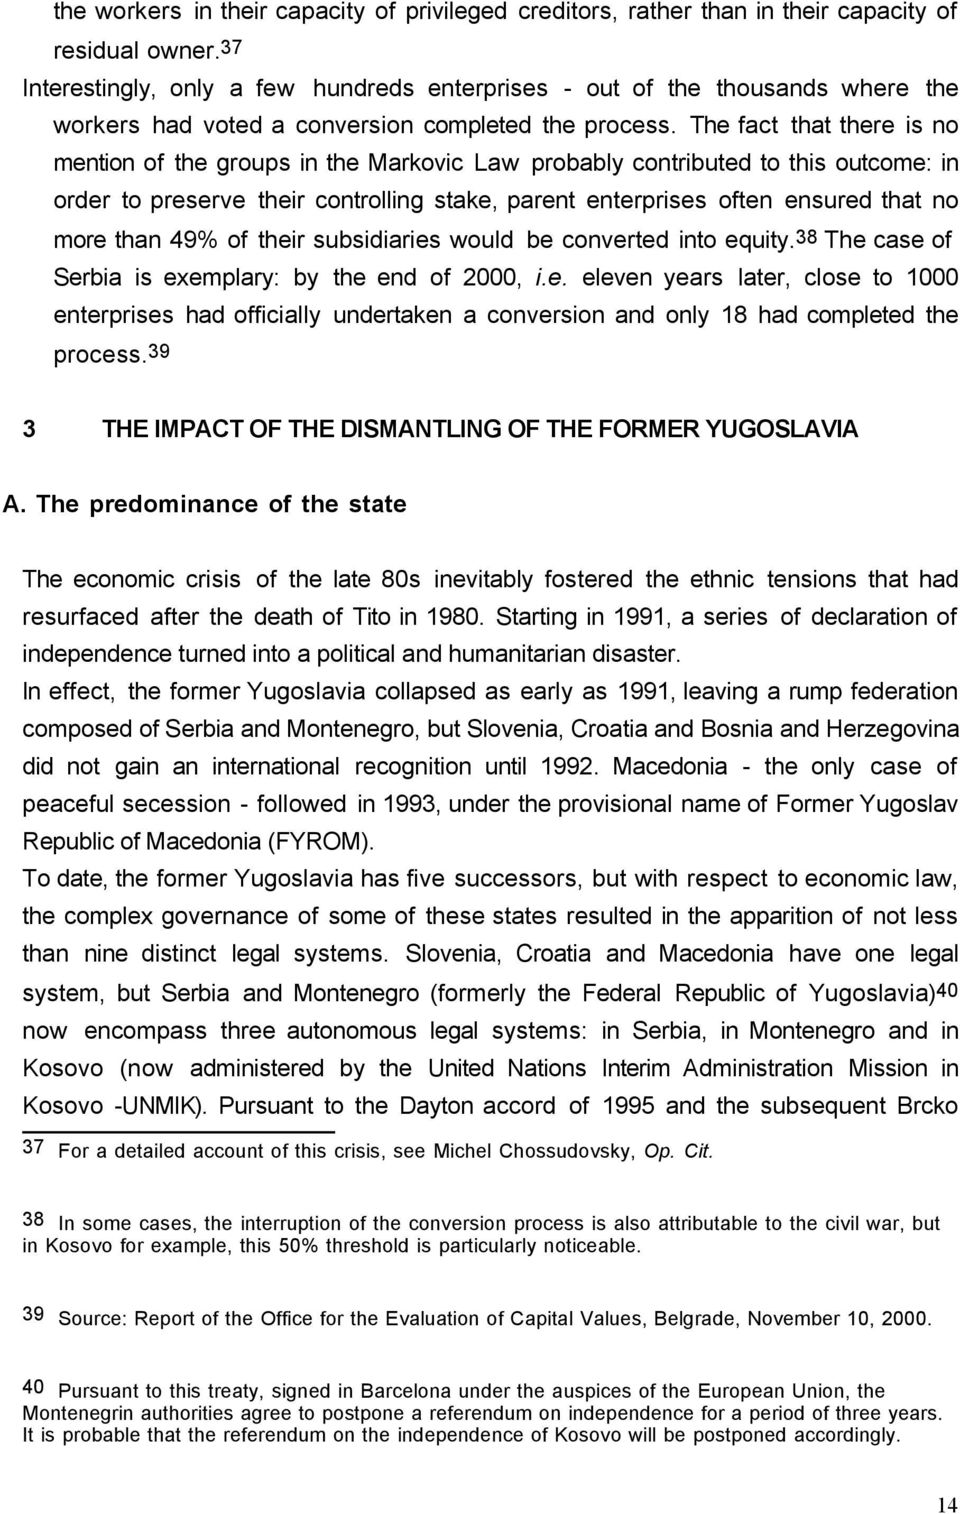 The fact that there is no mention of the groups in the Markovic Law probably contributed to this outcome: in order to preserve their controlling stake, parent enterprises often ensured that no more